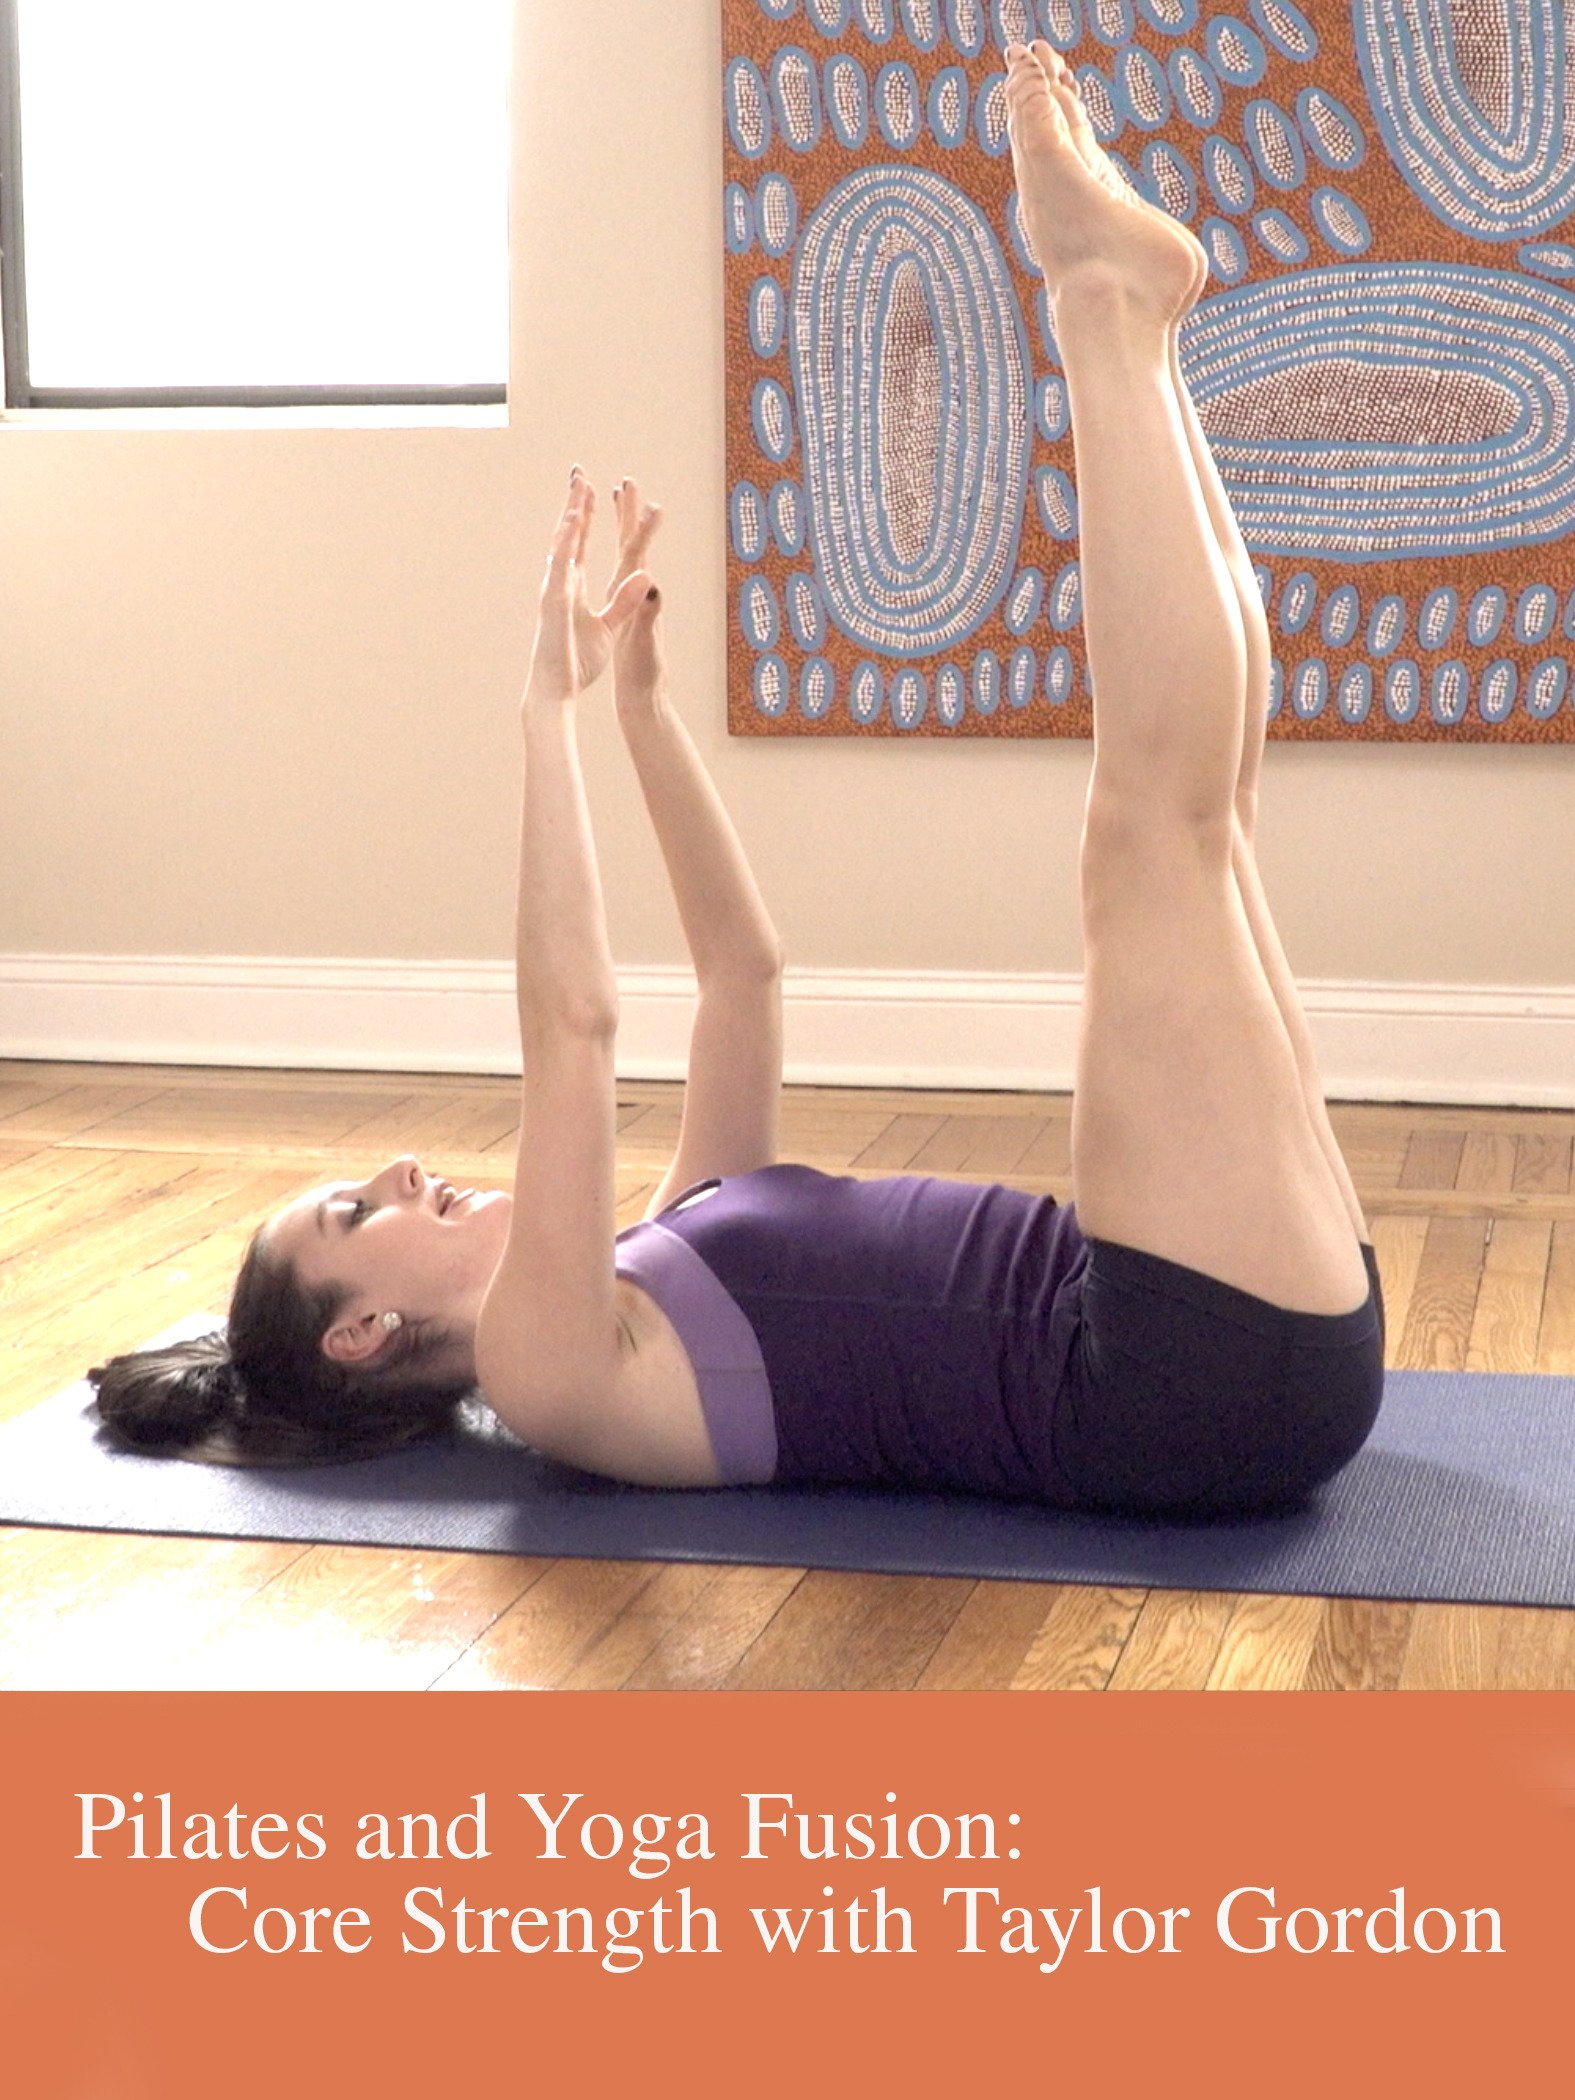 Pilates and Yoga Fusion: Core Strength with Taylor Gordon